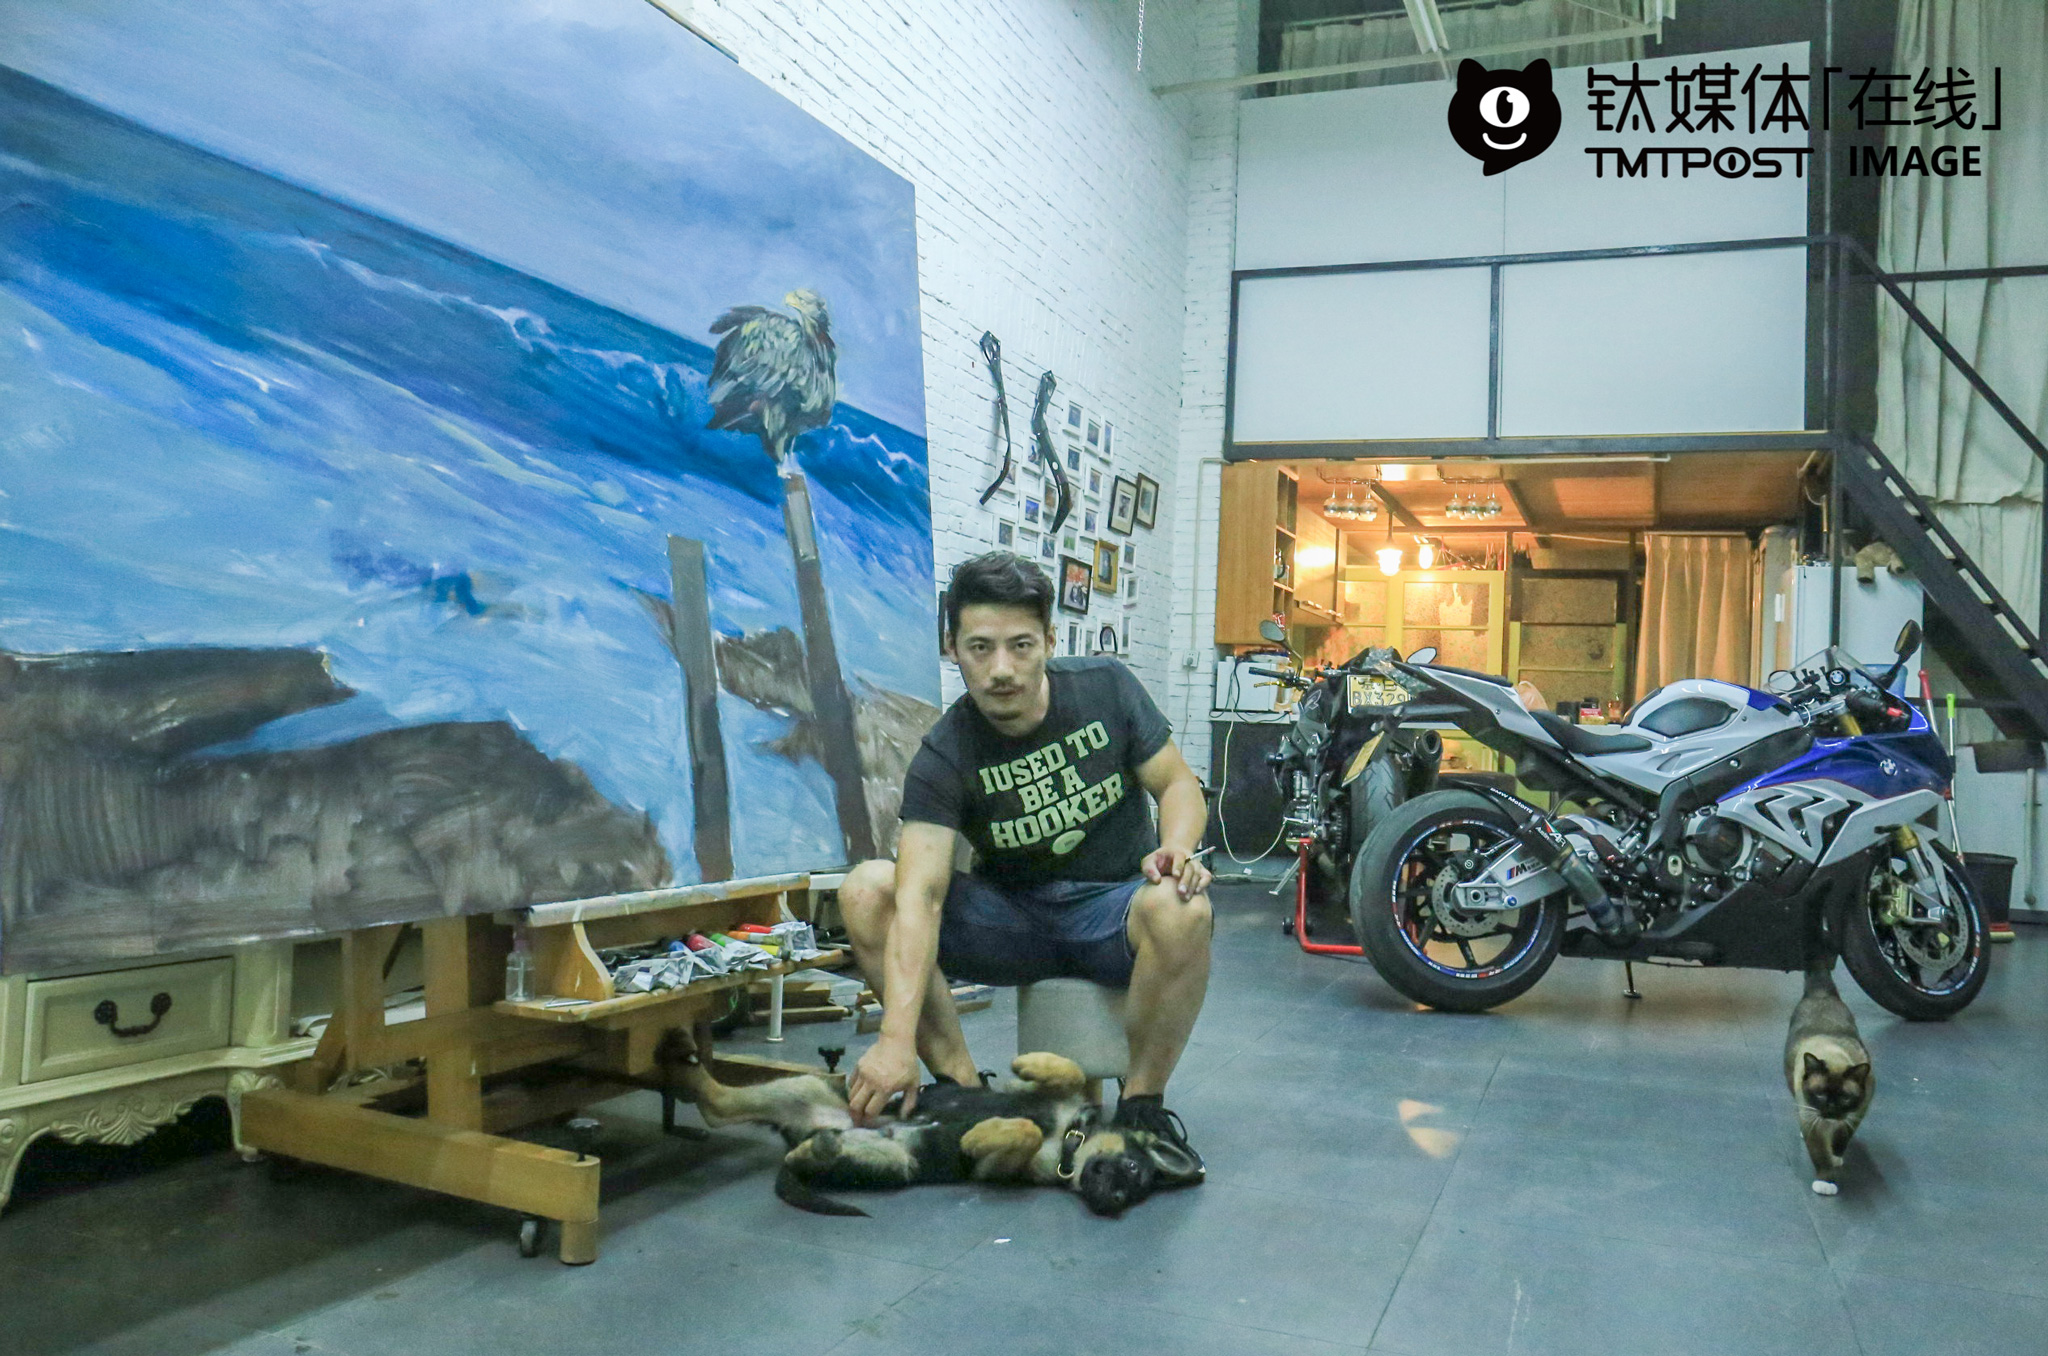 """Xin Zhihua was having a rest in his own art studio. After graduating from the Central Academy of Fine Arts, he became a professional painter and art work dealer. For him, he needs to stay quiet when painting, but get crazy when riding motorcycles. To some degree, riding motorcycles helped him relax himself. """"Deep down, however, I can get really crazy when painting, but stay very quite when riding motorcycles,"""" he explained."""